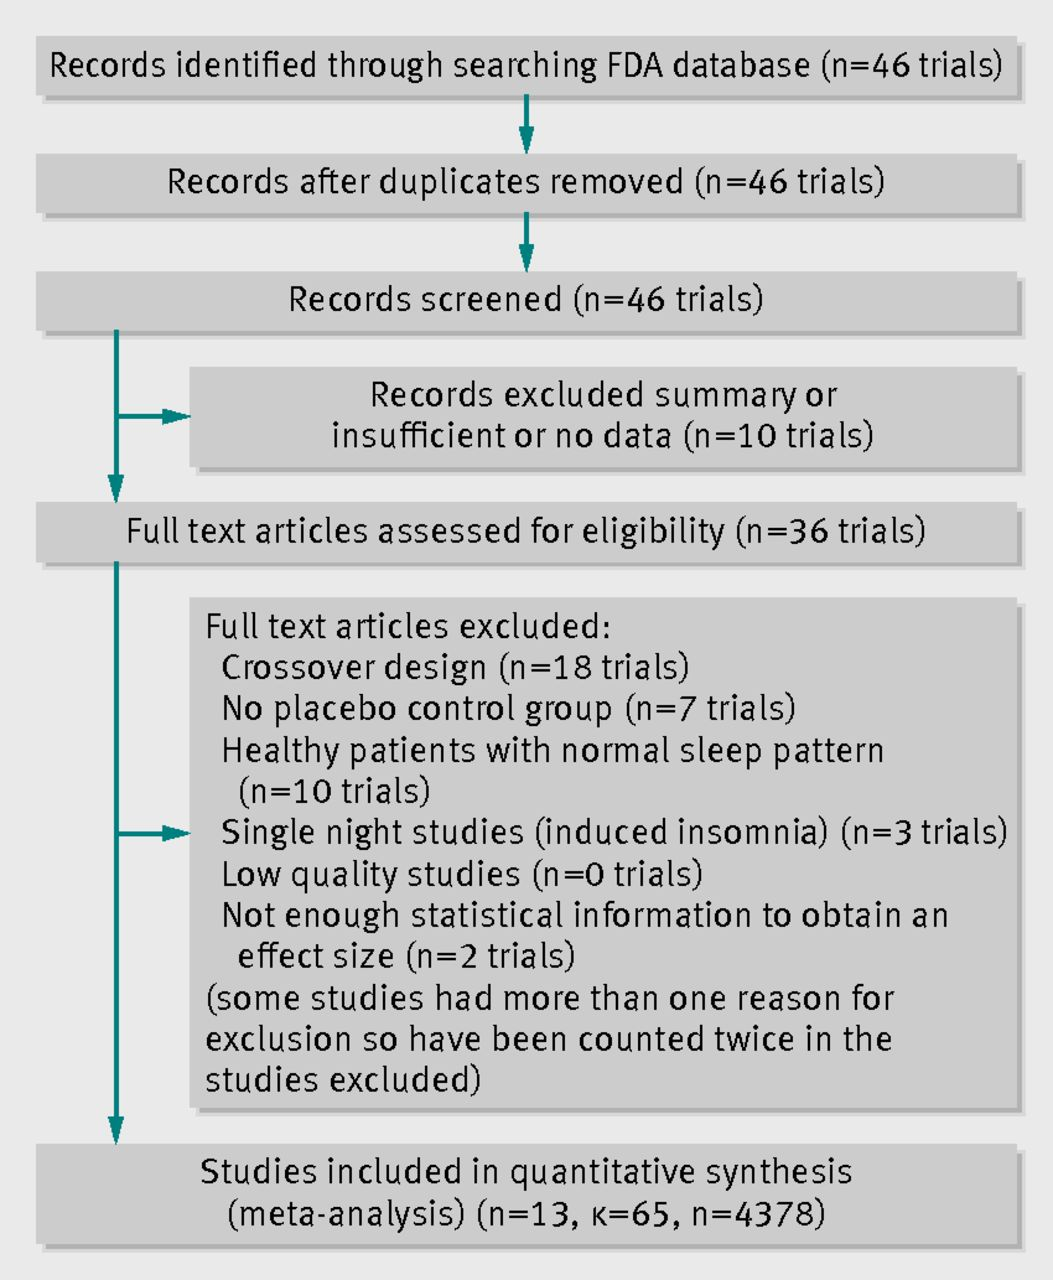 effectiveness of non benzodiazepine hypnotics in treatment of fig 1 identification of studies from fda databases and inclusion in study